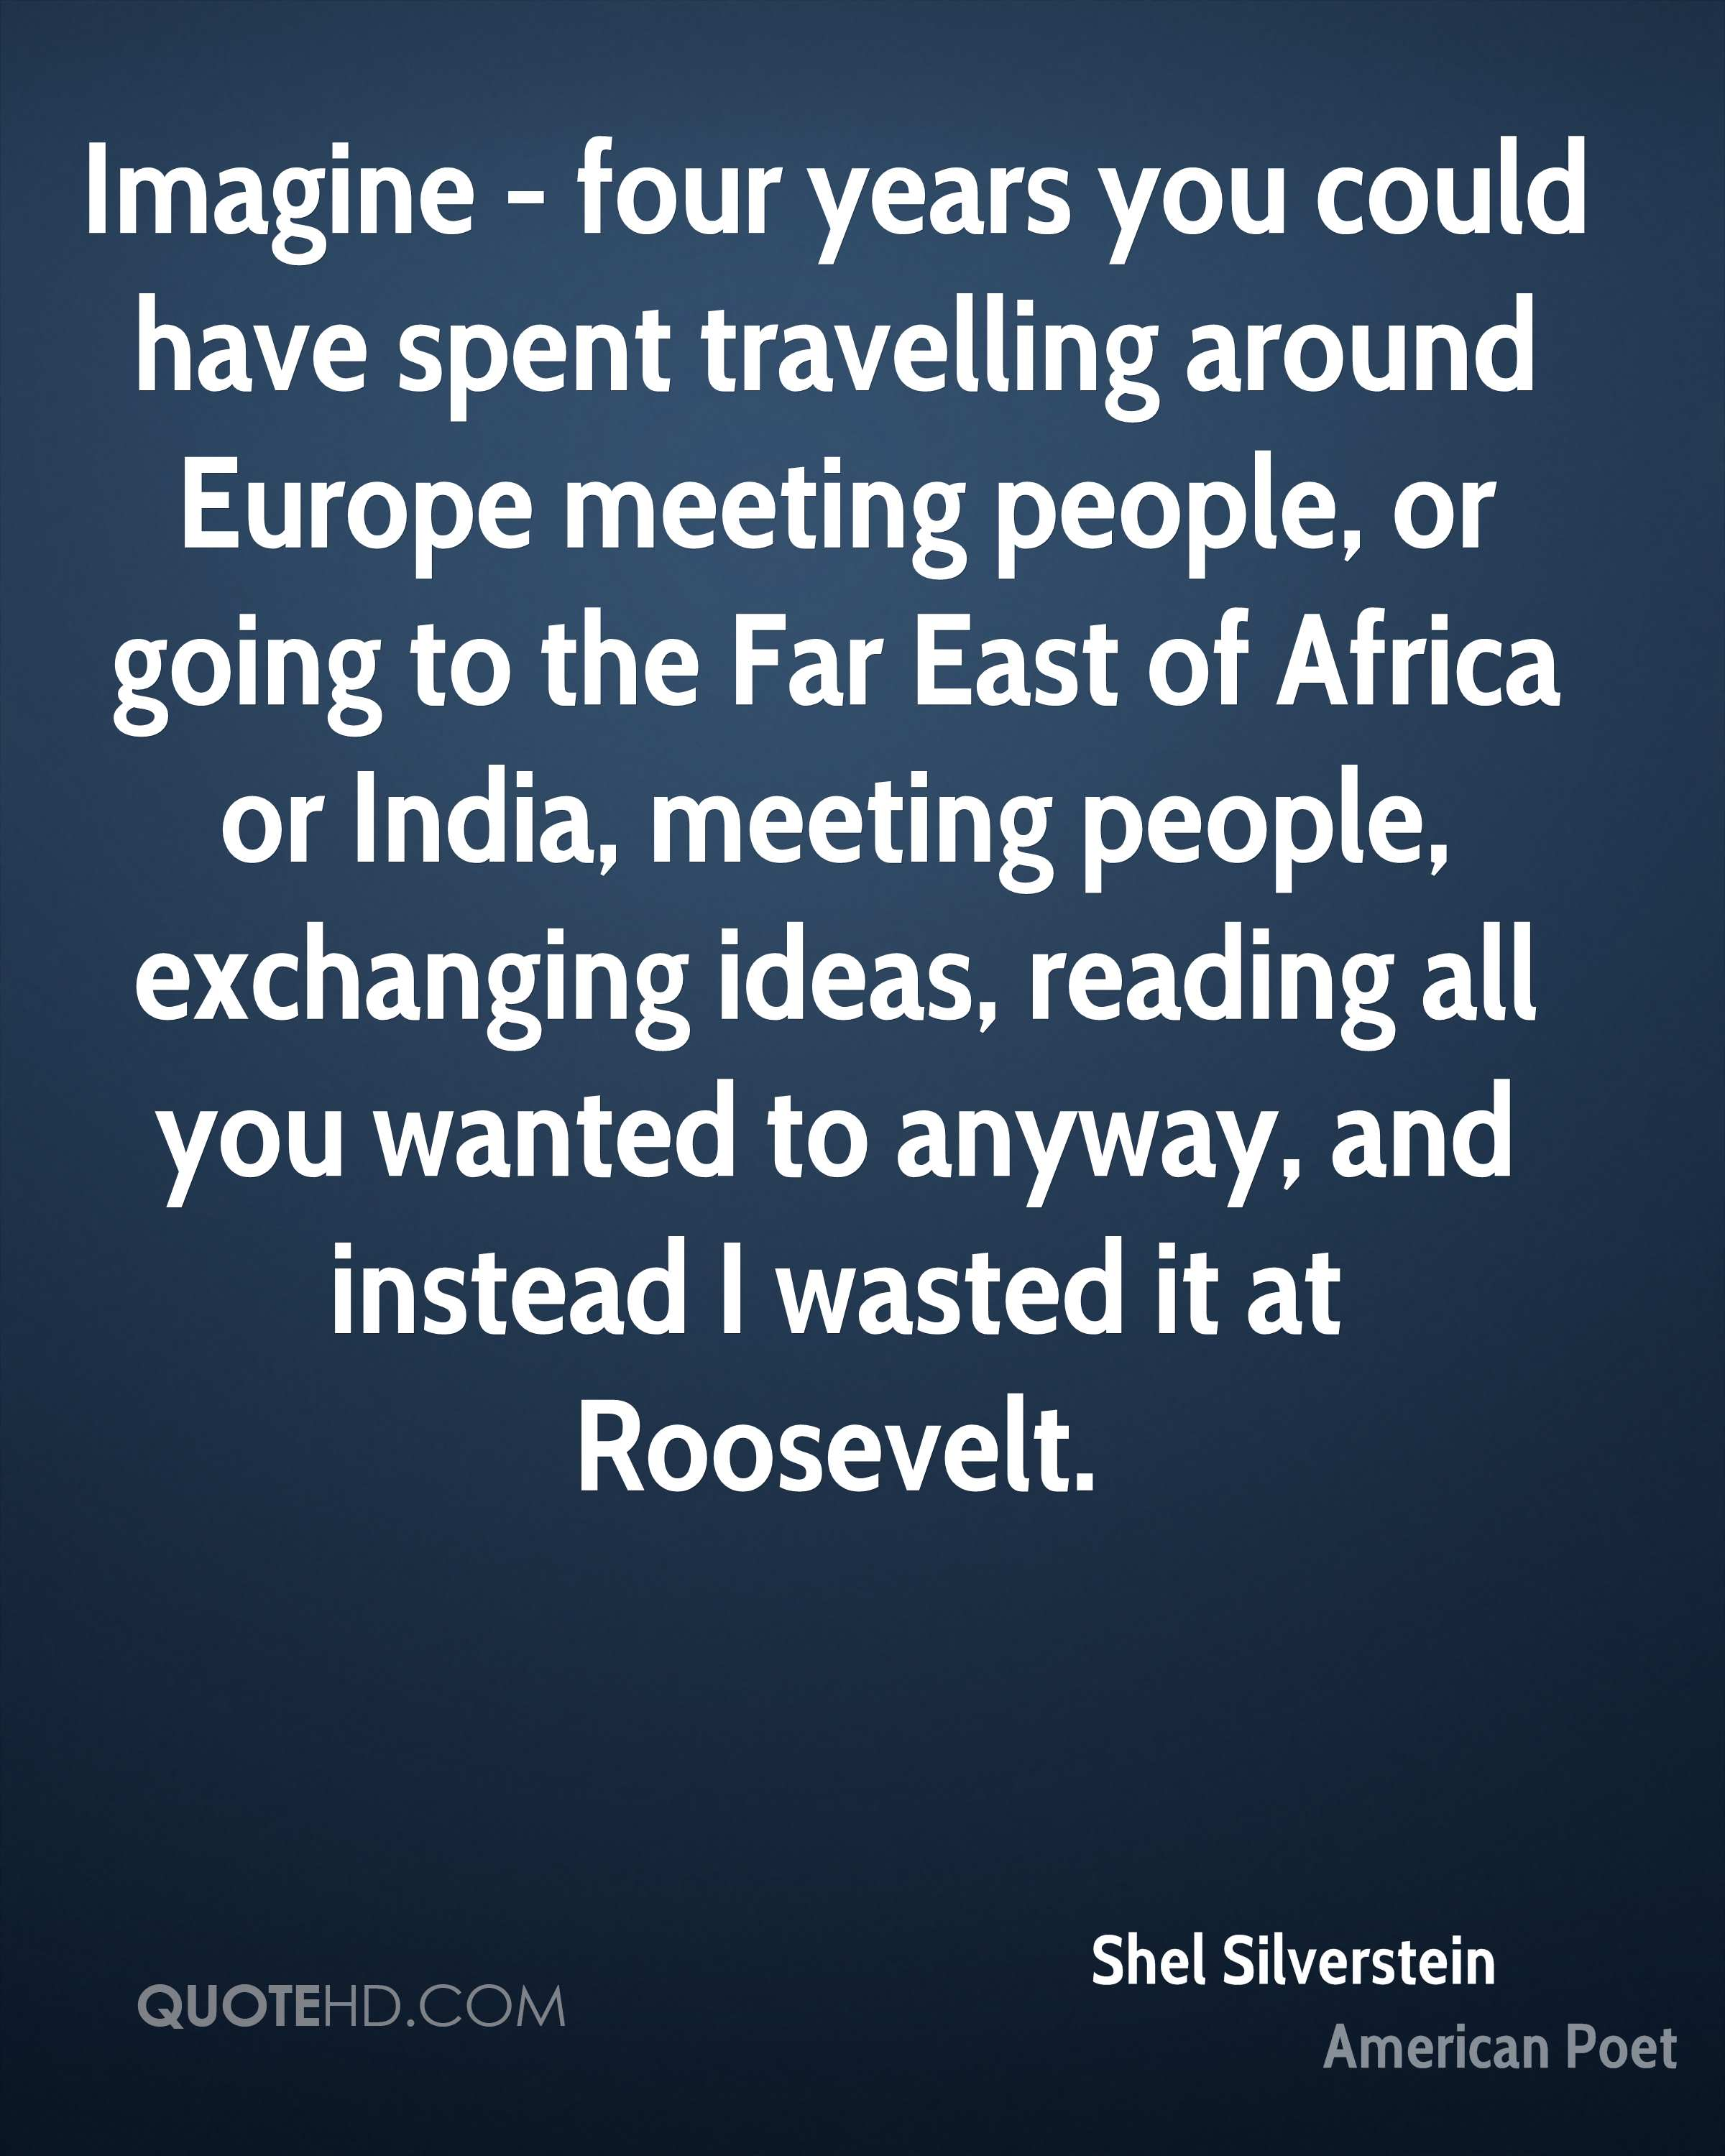 Imagine - four years you could have spent travelling around Europe meeting people, or going to the Far East of Africa or India, meeting people, exchanging ideas, reading all you wanted to anyway, and instead I wasted it at Roosevelt.